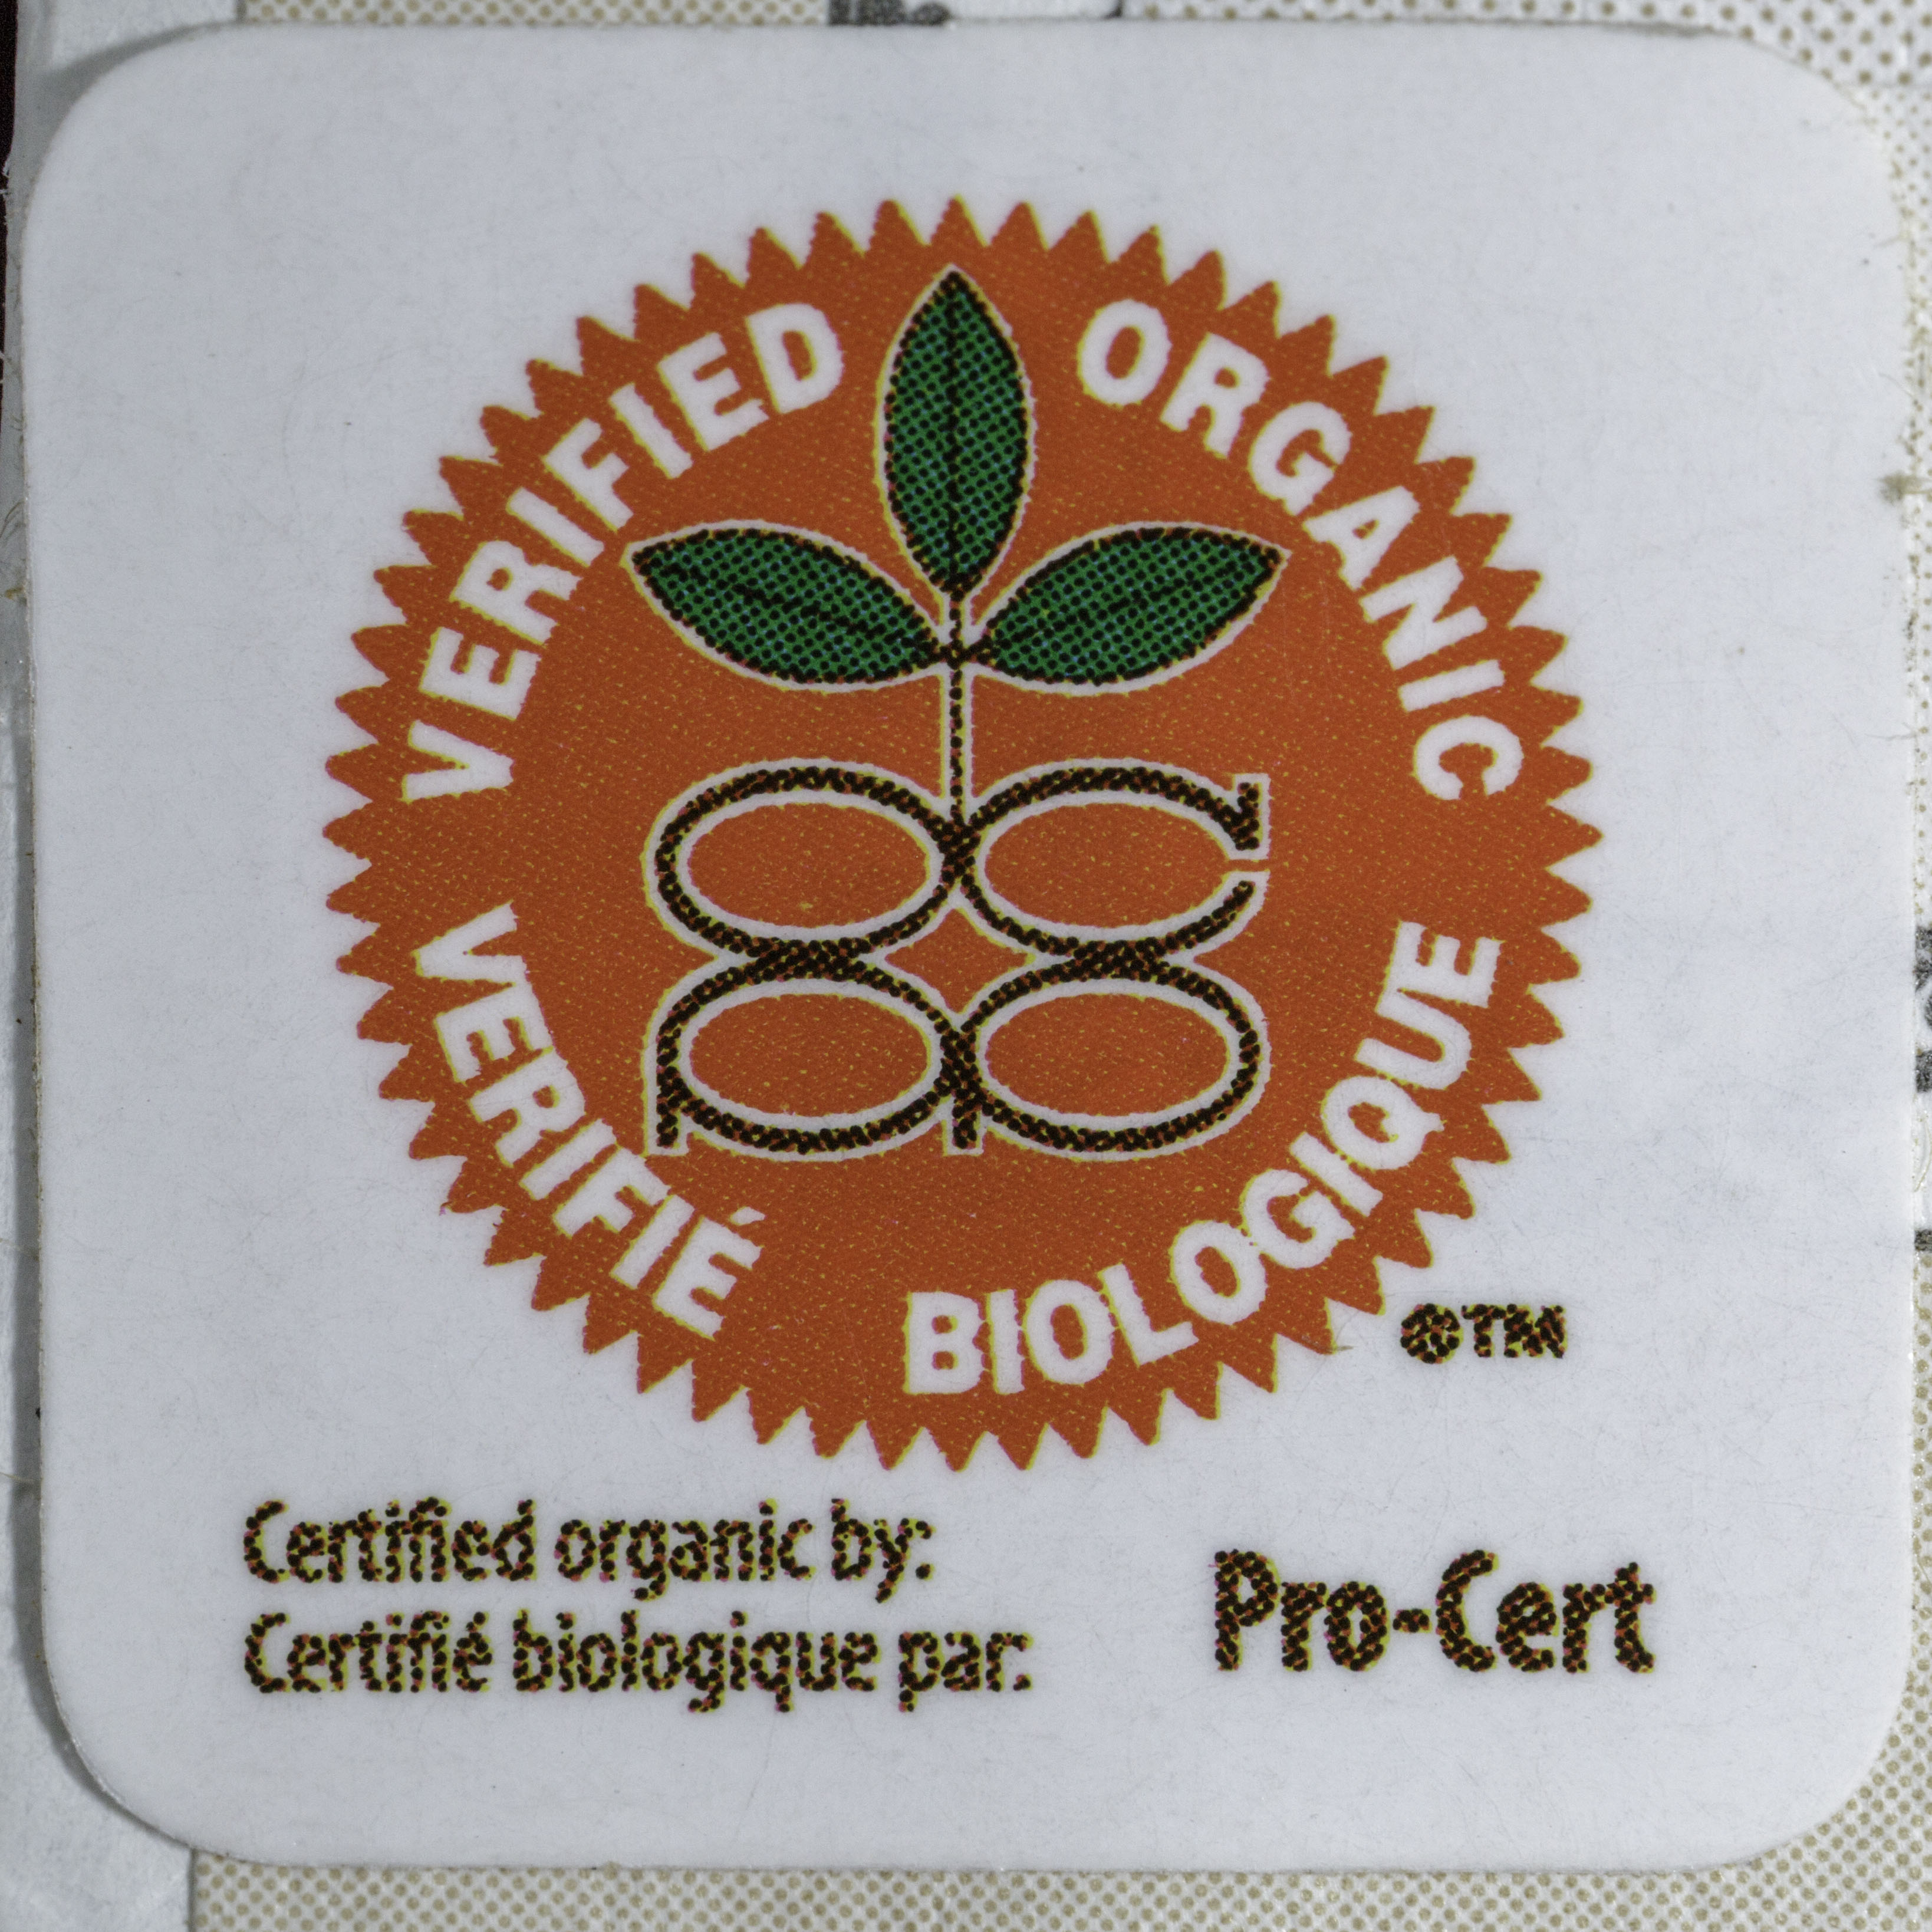 Certified Organic Certification Label for Silybum marianum (Milk Thistle) seeds.